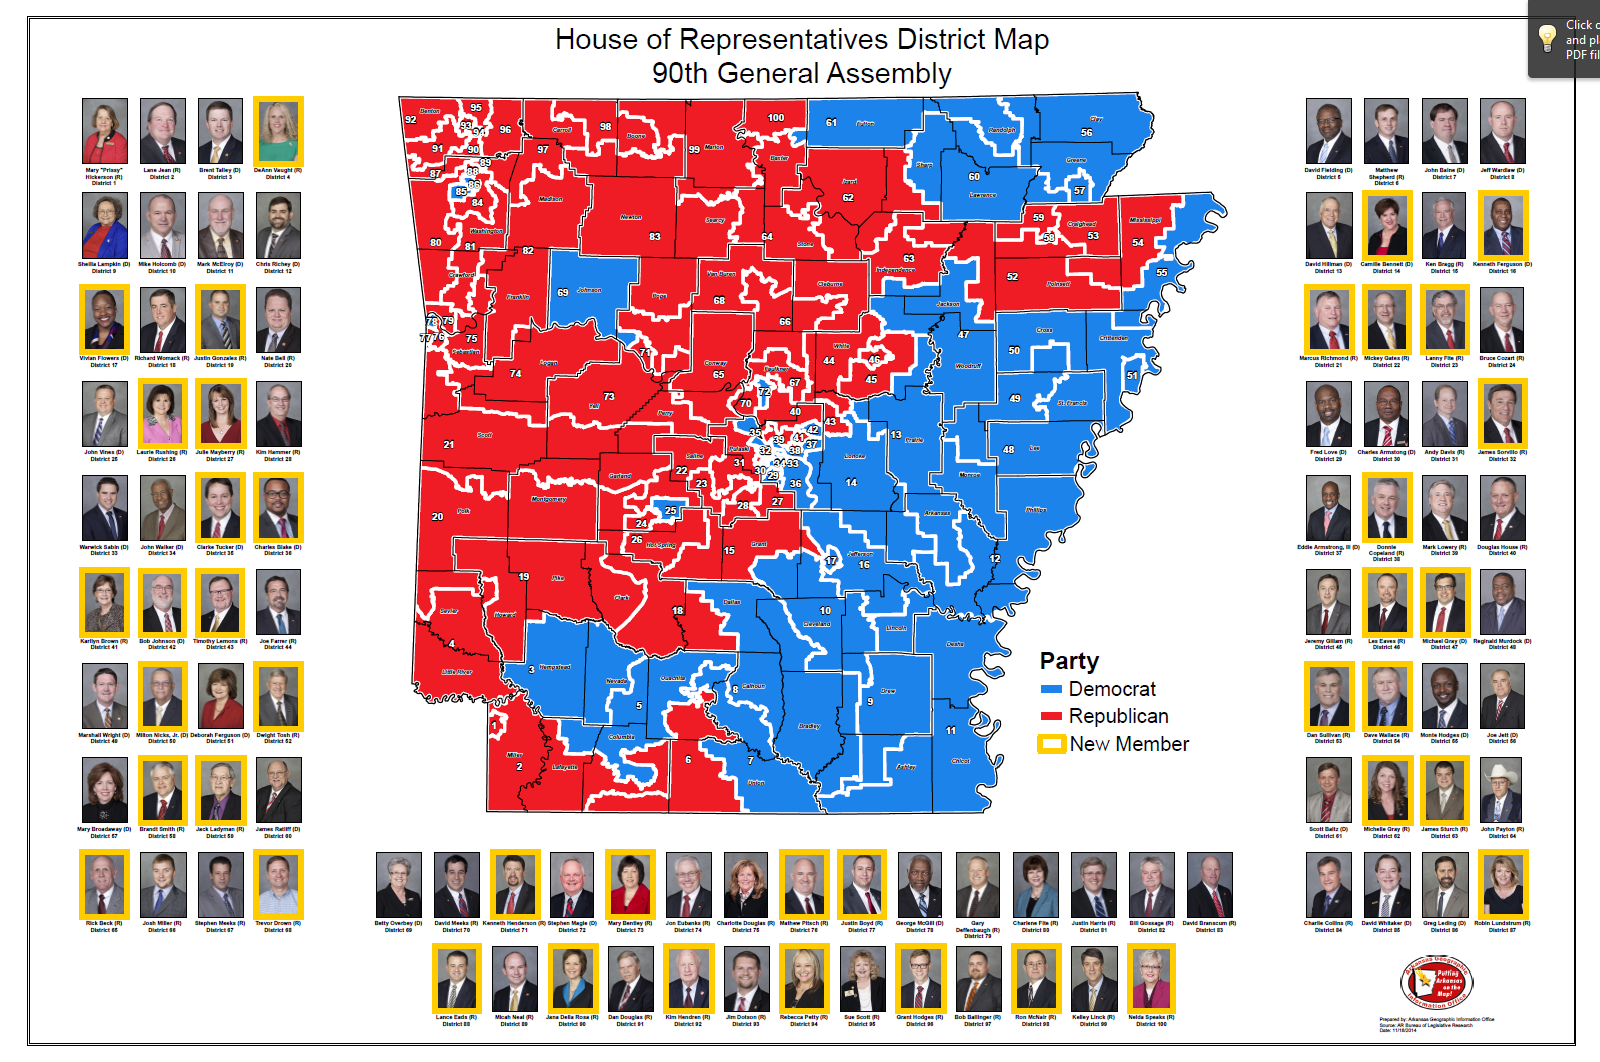 Read More House Of Representatives District Map 90th General Assembly 2015